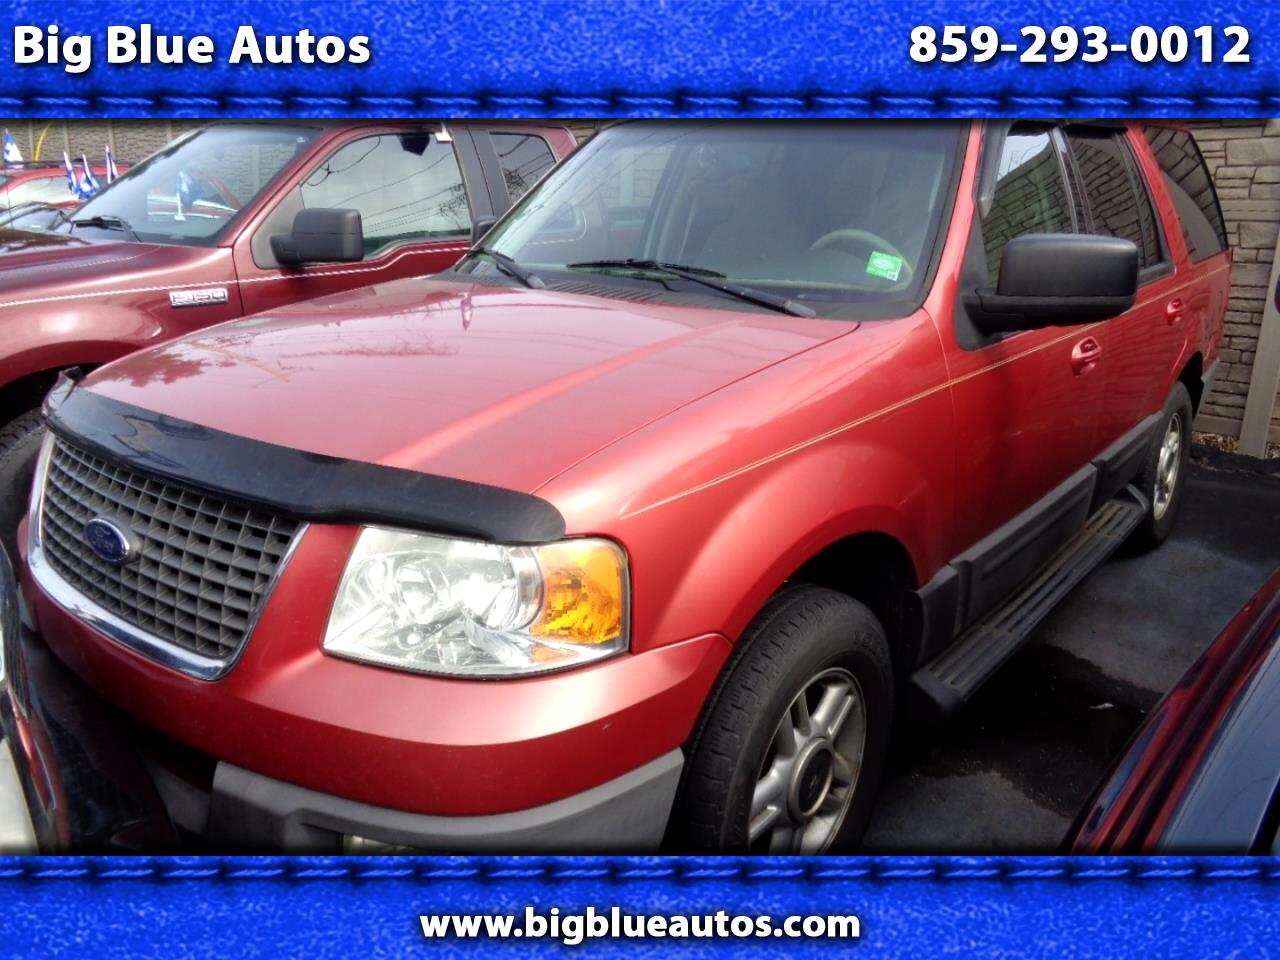 Ford Expedition 5.4L XLT FX4 Off-Road 4WD 2003